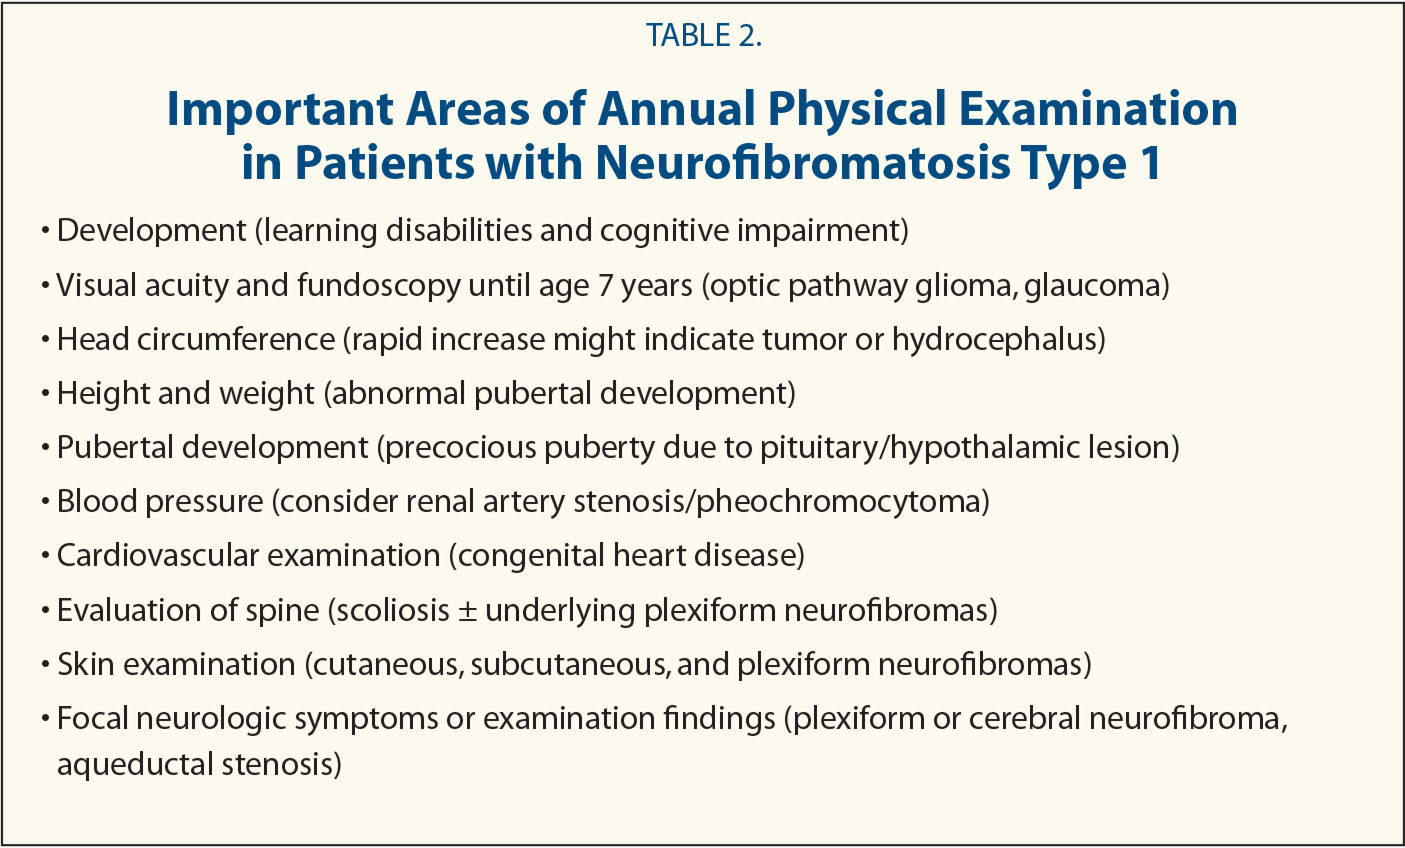 Important Areas of Annual Physical Examination in Patients with Neurofibromatosis Type 1